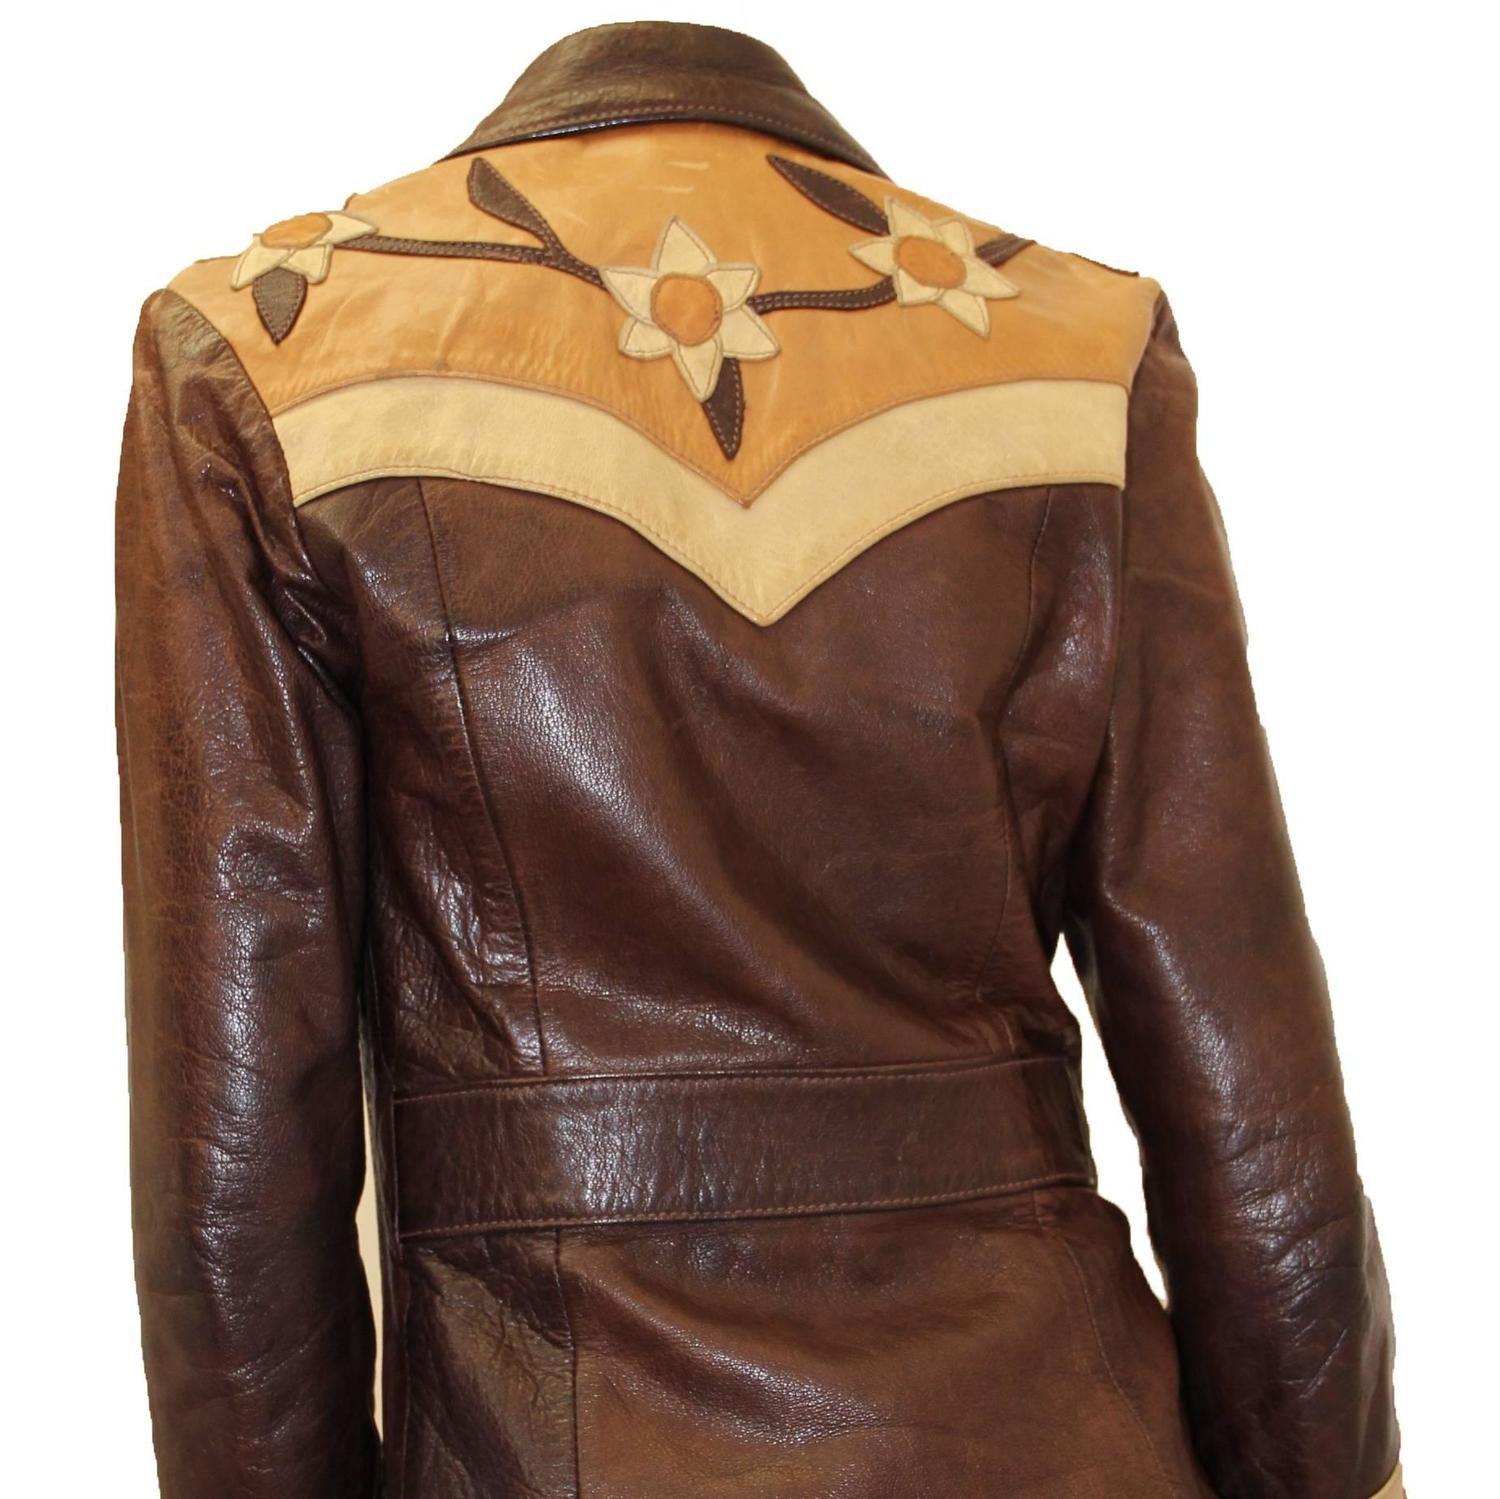 Late 1960s Handmade Leather Jacket For Sale At 1stdibs